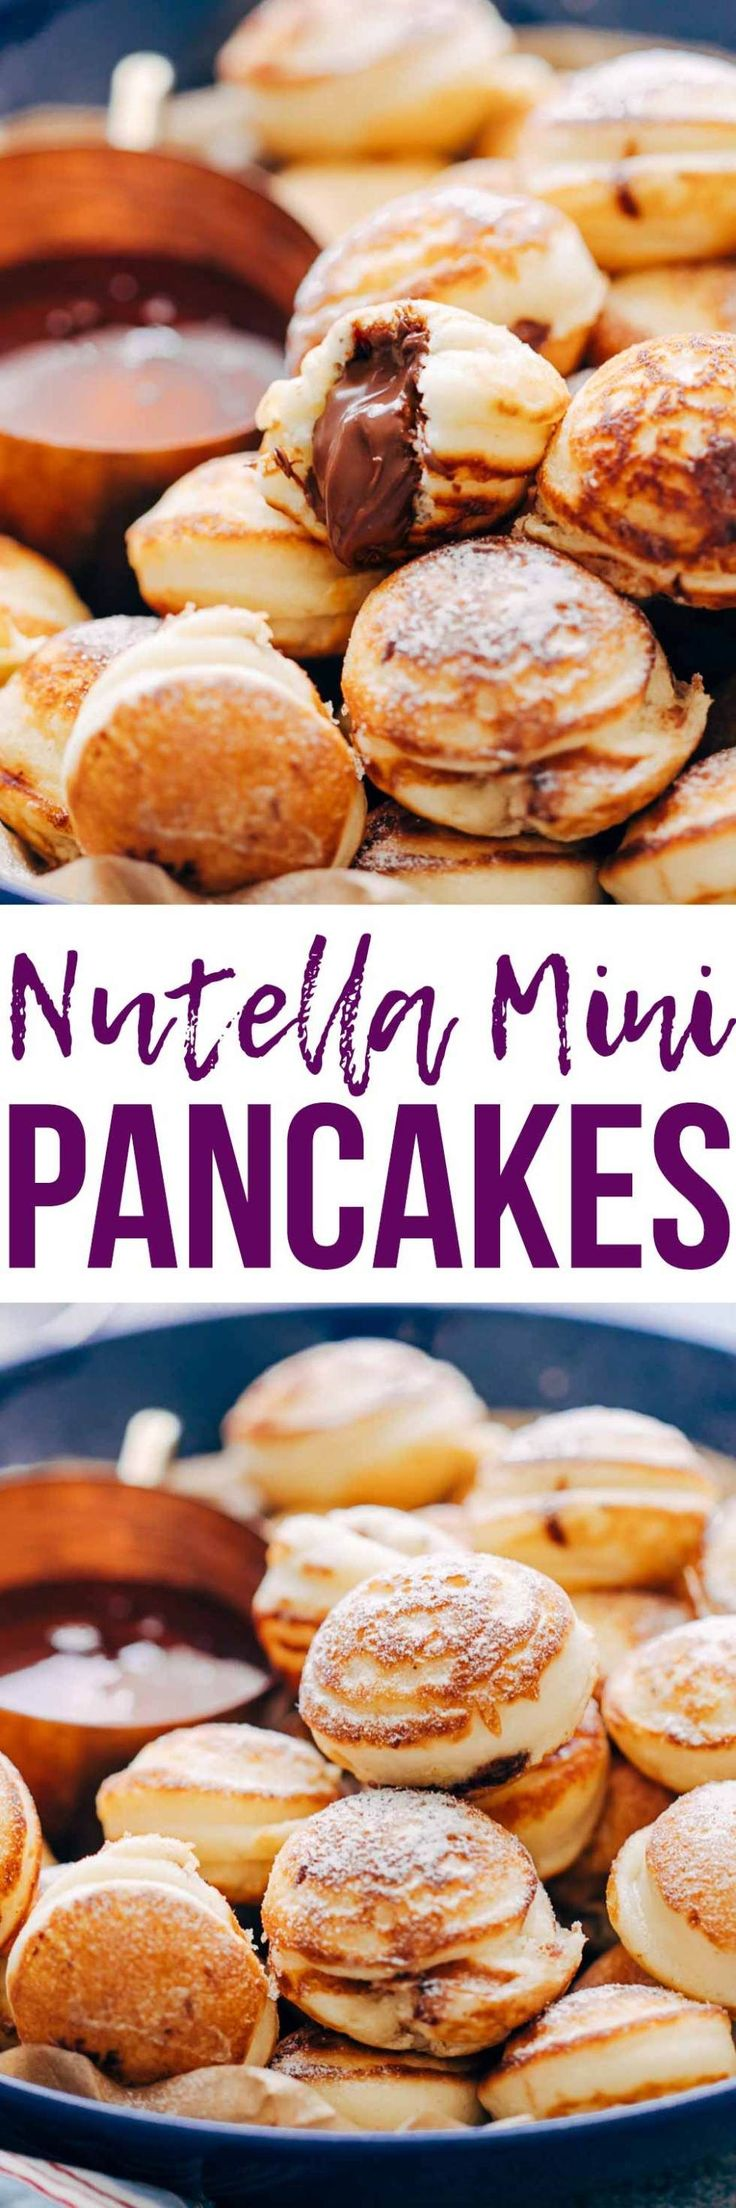 Chocolate Stuffed Mini Pancake Bites are a delicious breakfast/ brunch recipe, made with pancake mix, kid friendly and perfect for a brunch party! Also make them as a back to school evening snack and everyone will love them! My Food Story blog